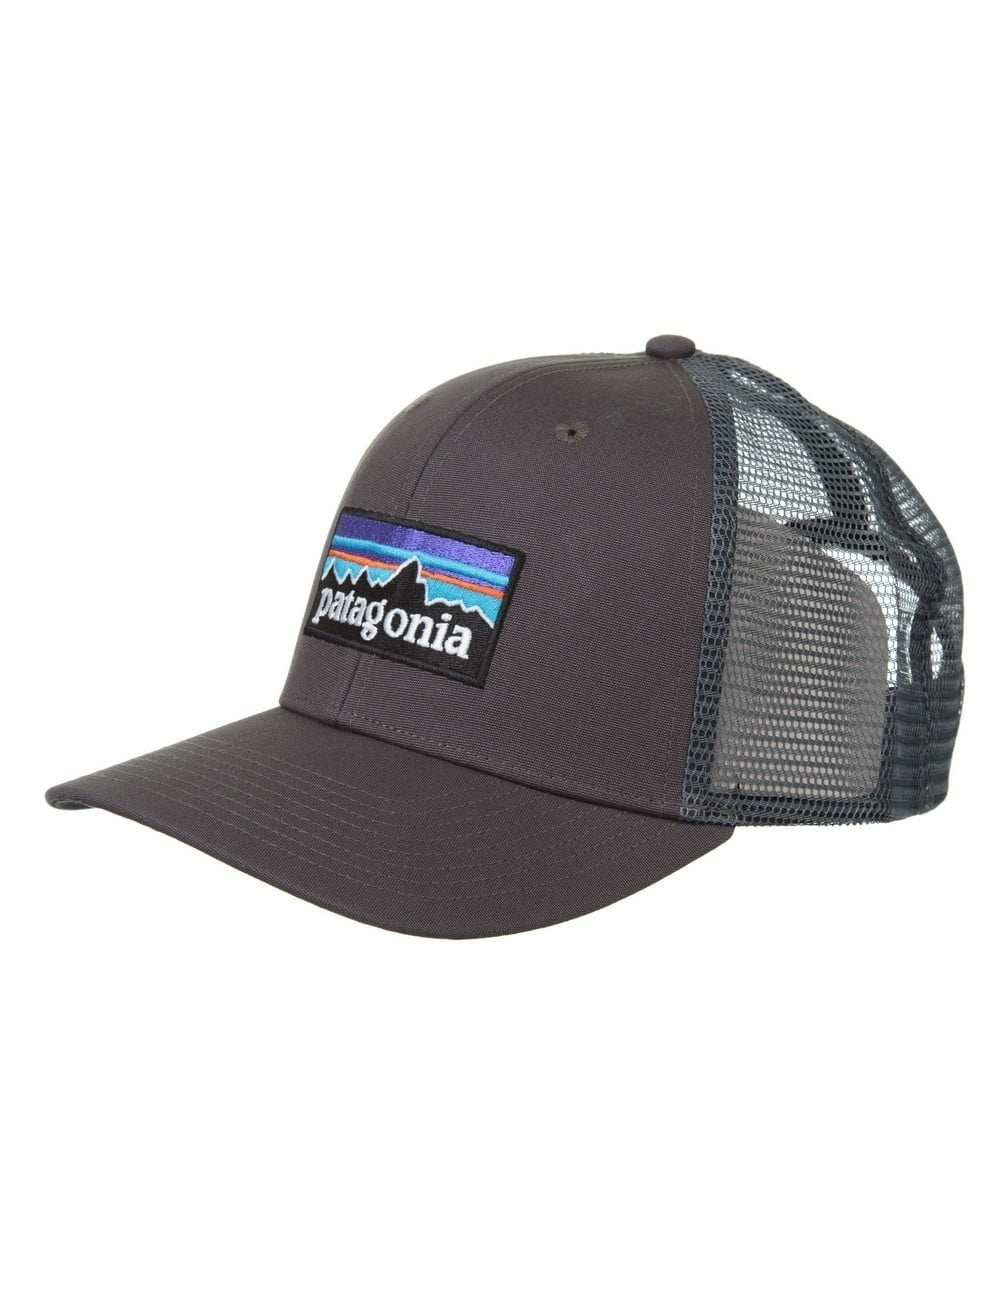 Patagonia P-6 Logo Trucker Hat - Forge Grey - Hat Shop from Fat ... eefe2372cd1f